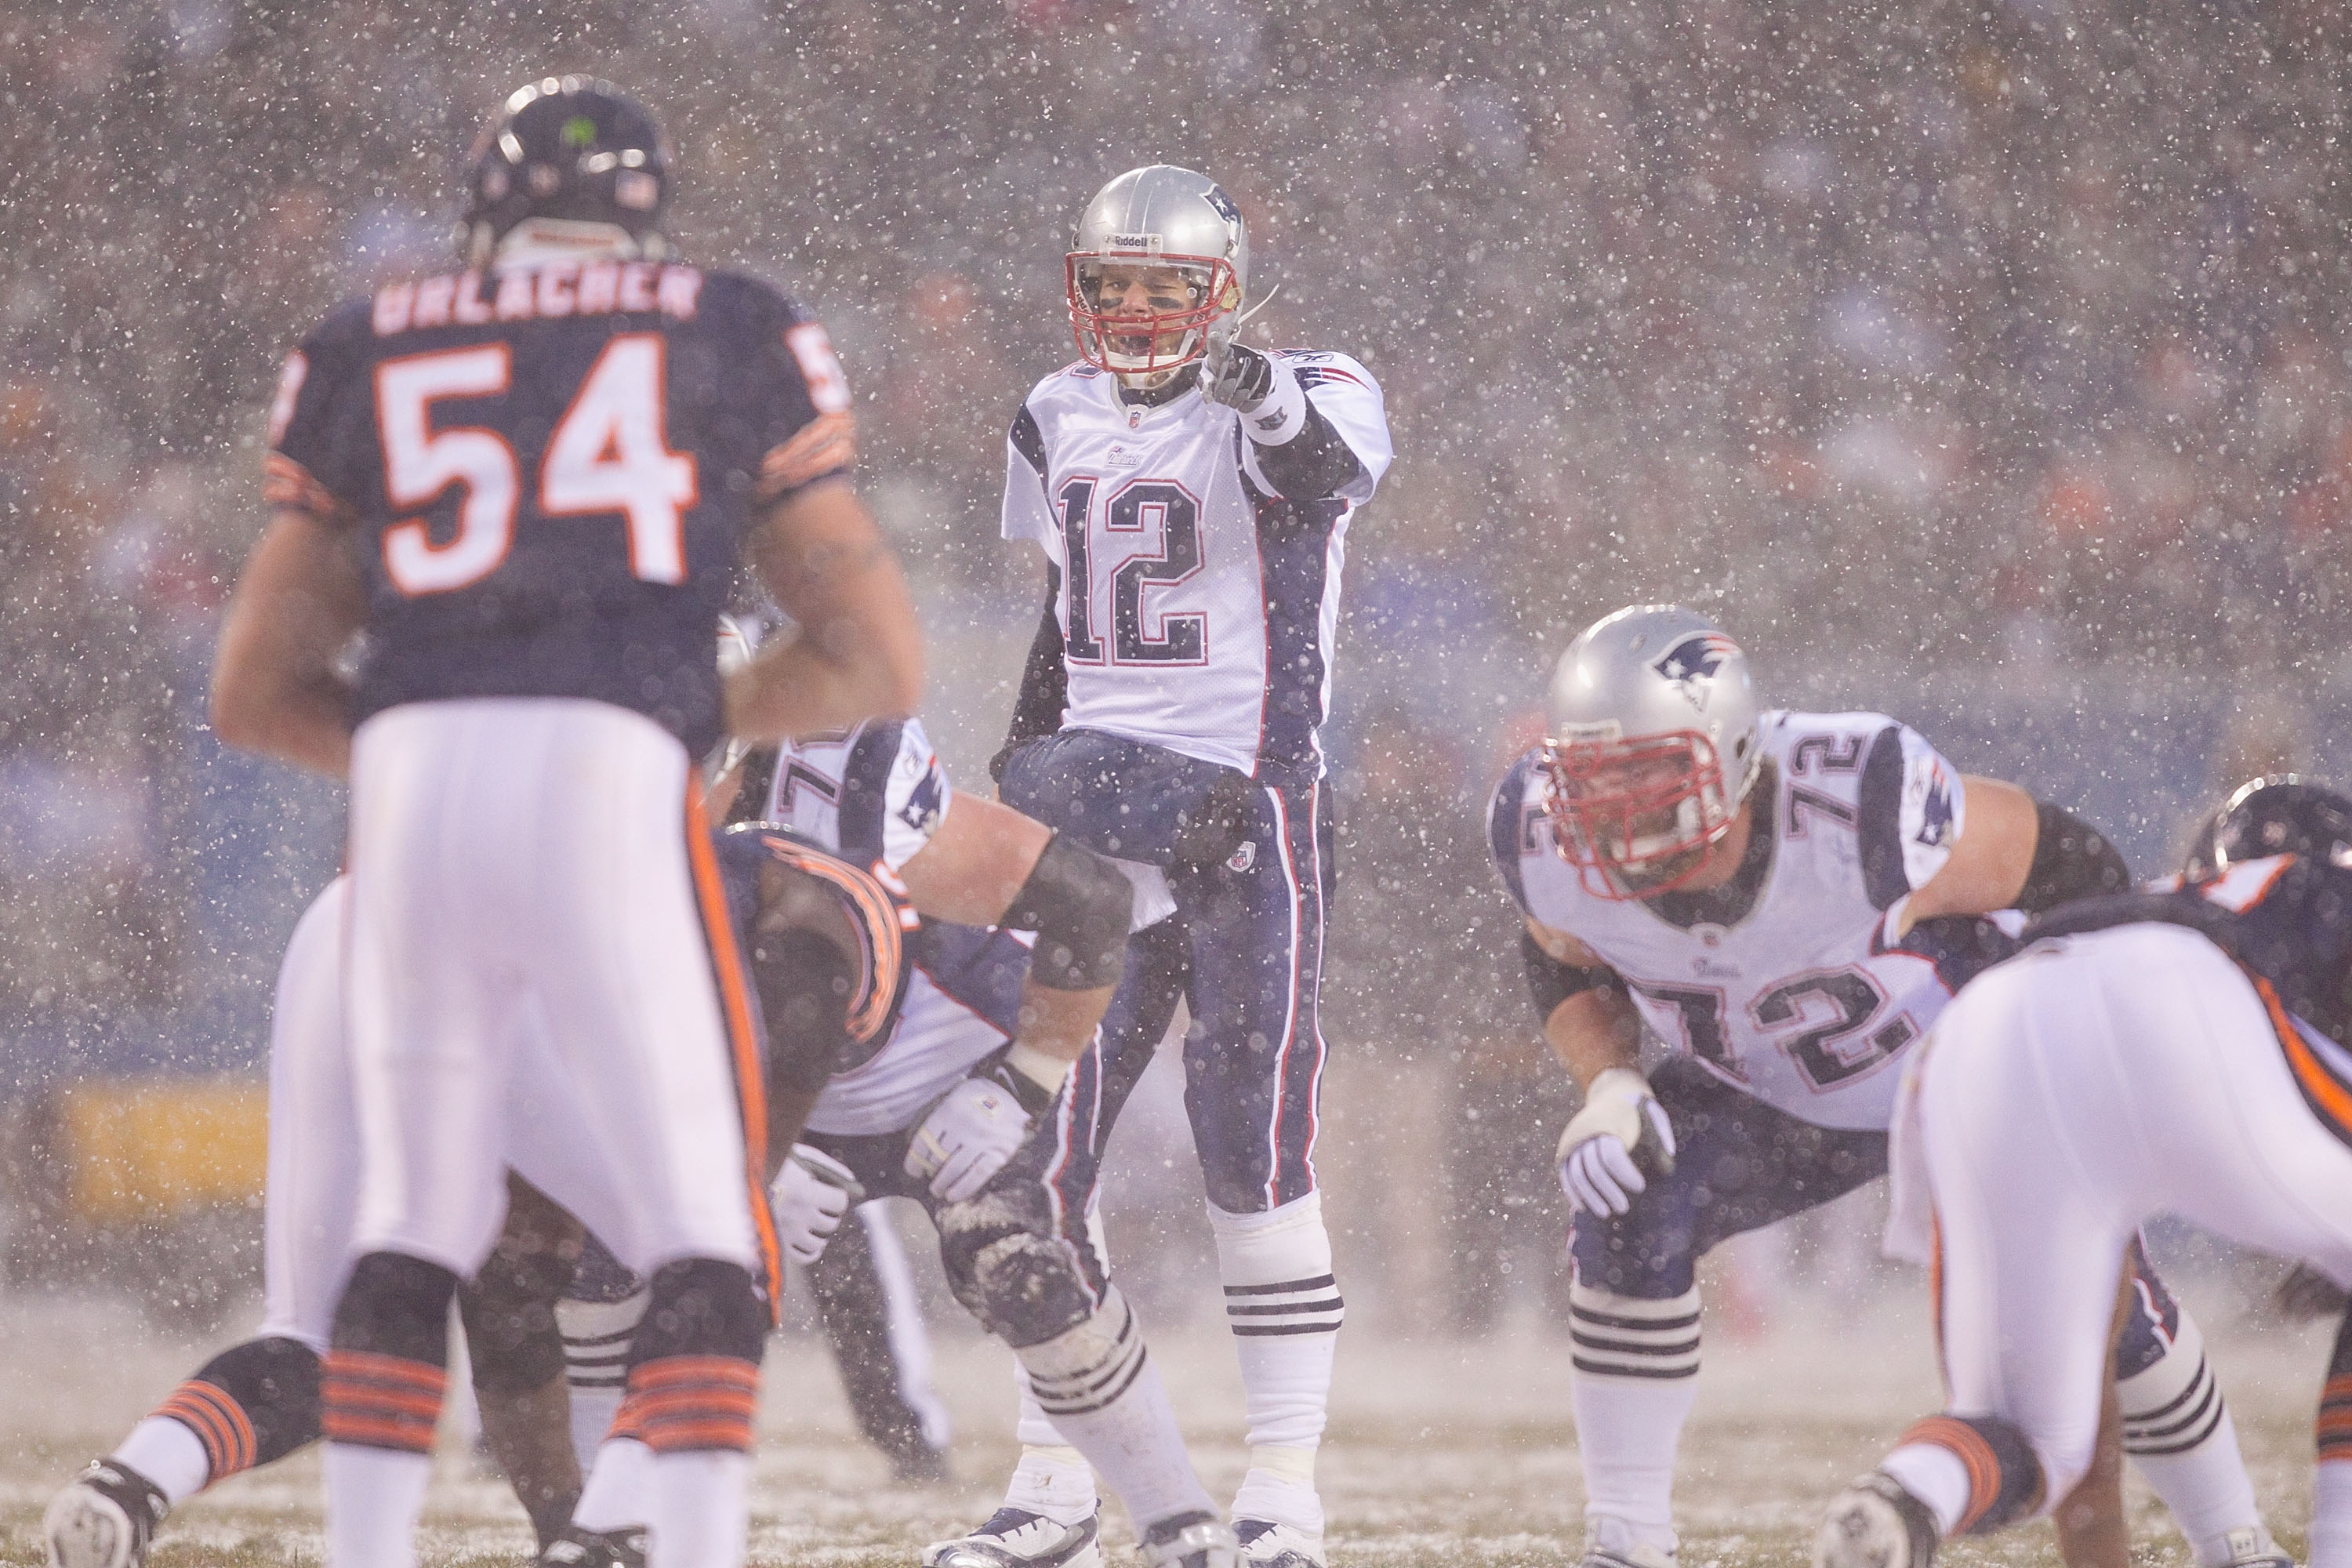 CHICAGO, IL - DECEMBER 12: Tom Brady #12 of the New England Patriots directs the offense against the Chicago Bears at Soldier Field on December 12, 2010 in Chicago, Illinois.  The Patriots beat the Bears 36-7.  (Photo by Dilip Vishwanat/Getty Images)